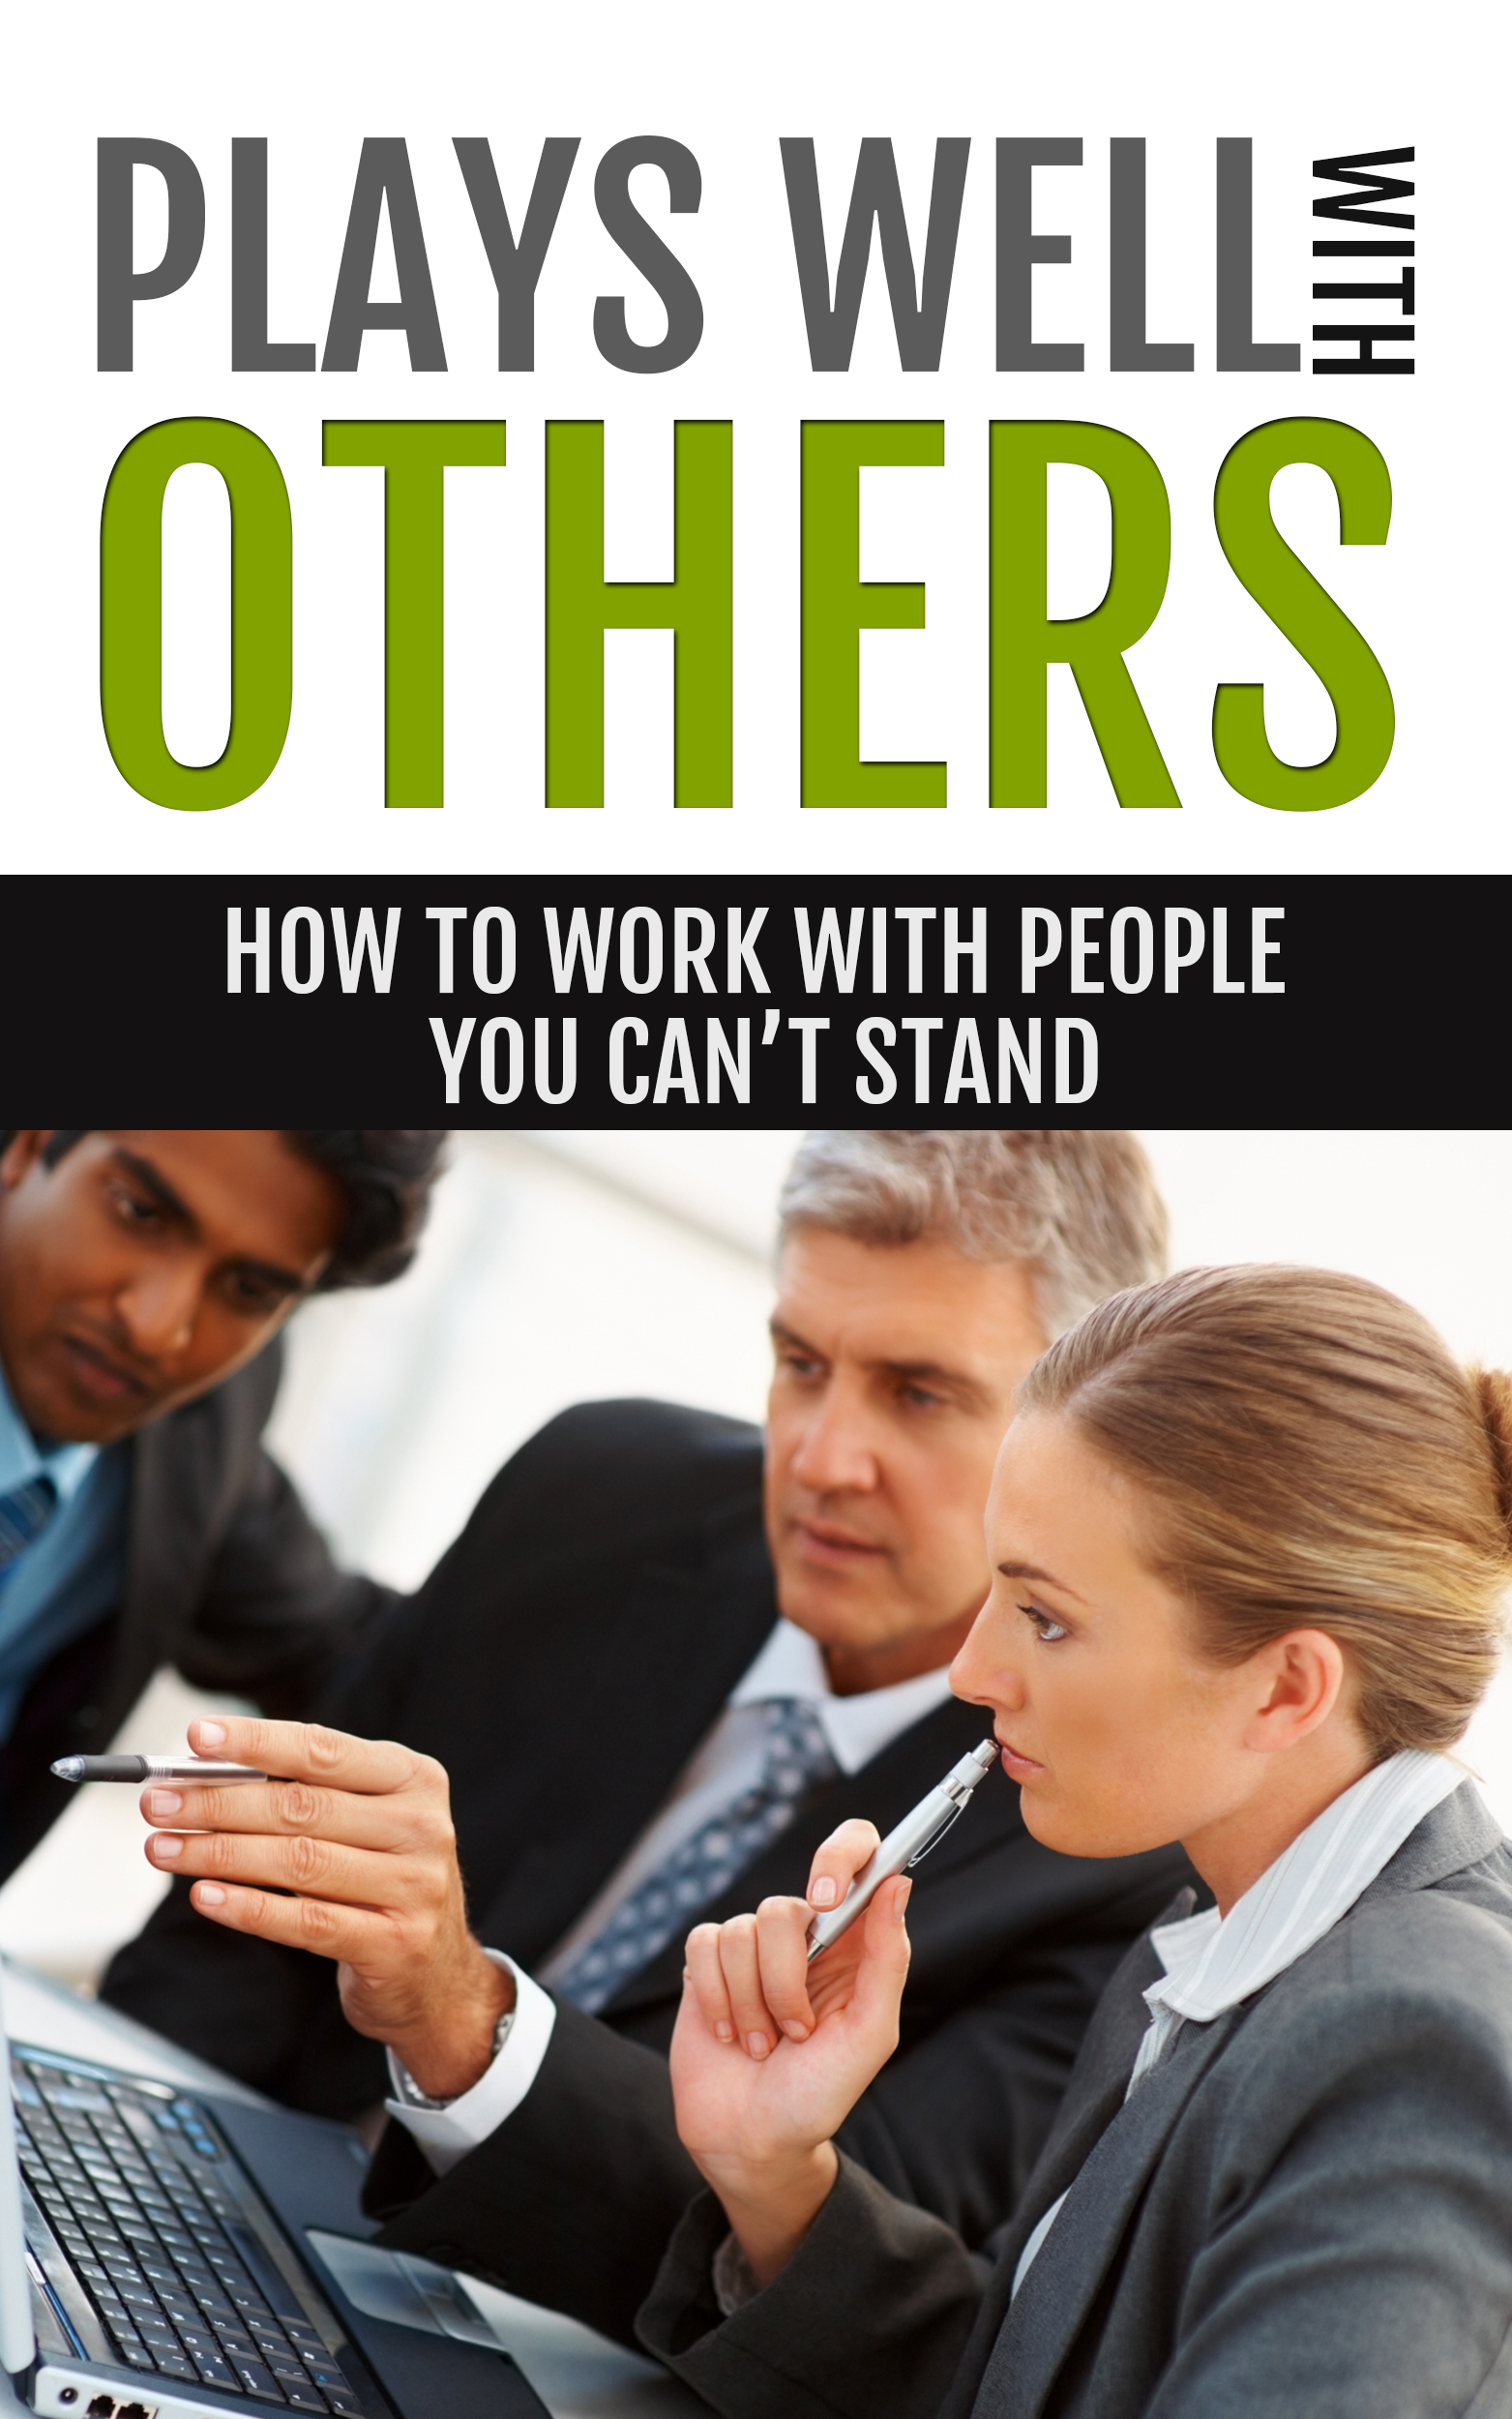 How to work with people you can't stand: plays wells with others